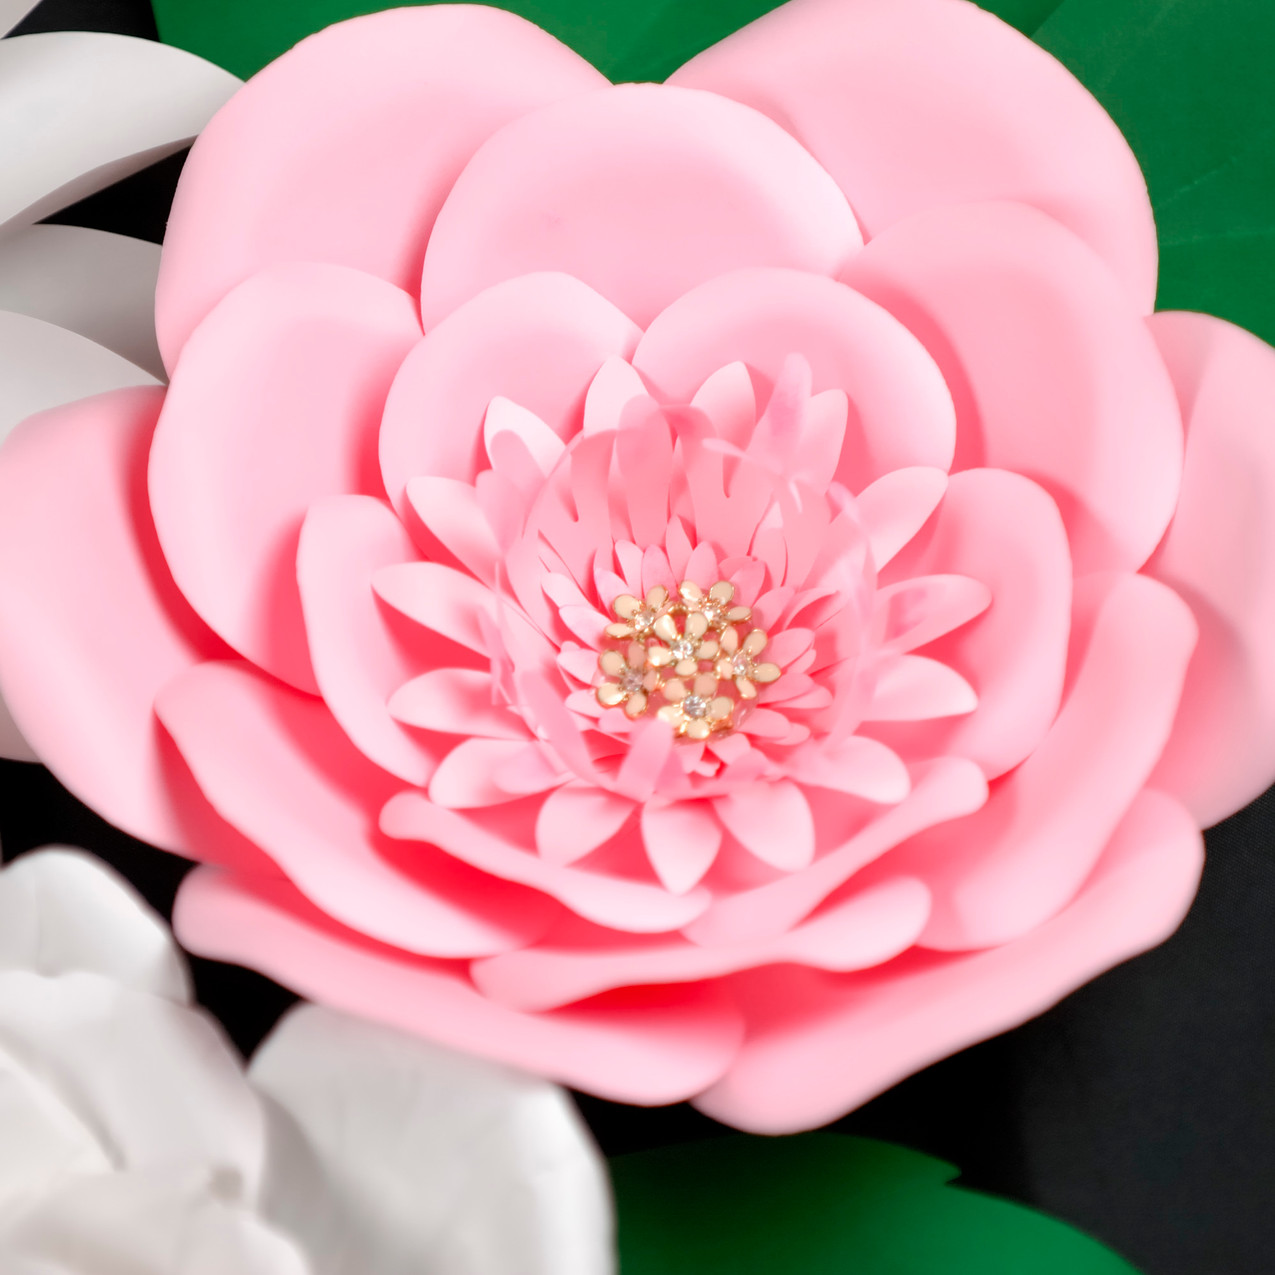 Wall giant flower decor - pink flower 1.